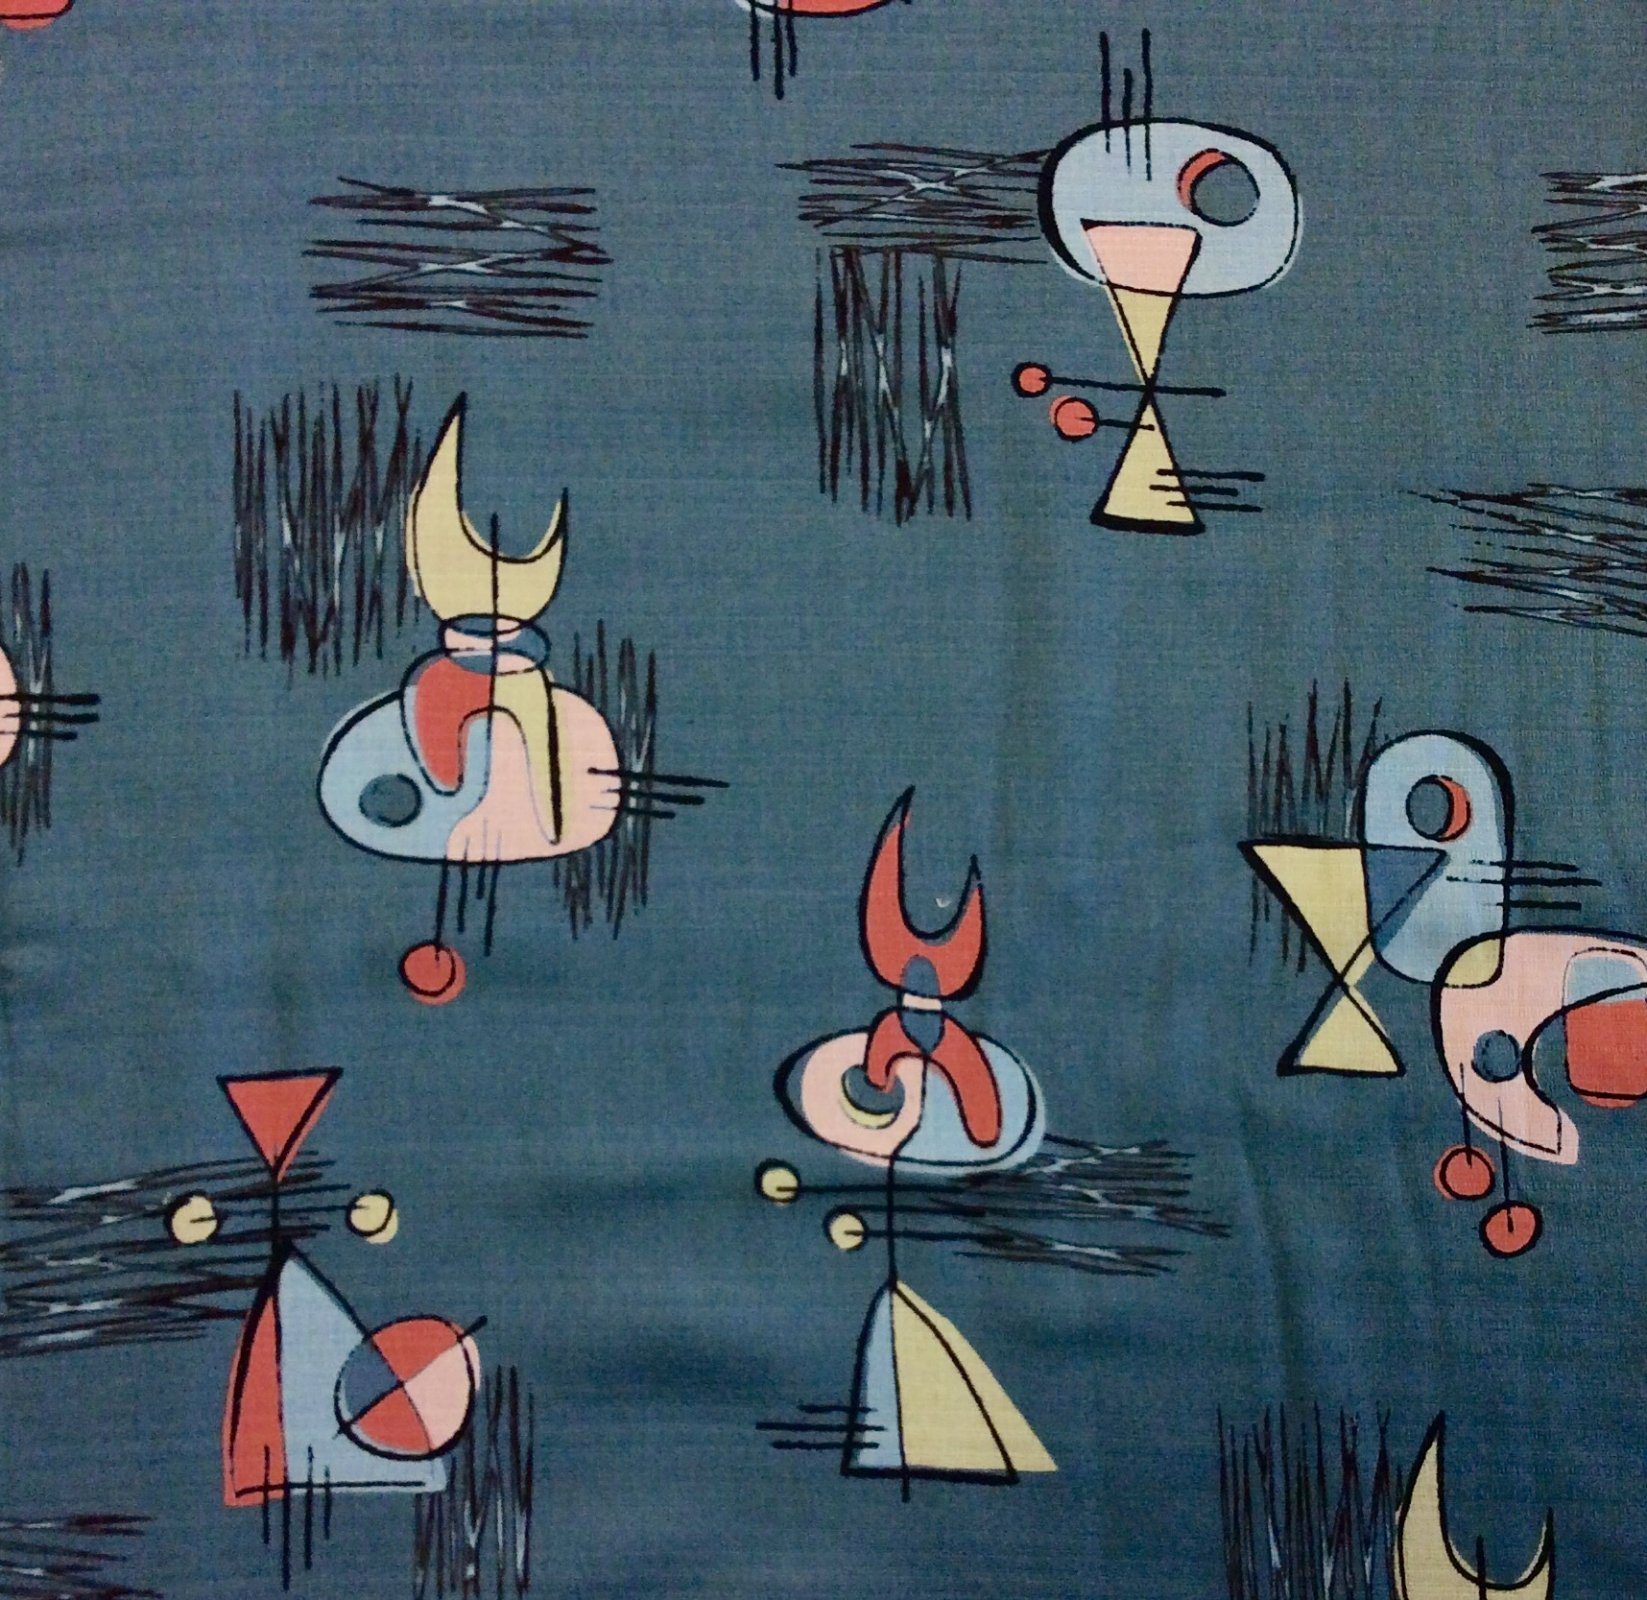 Atomic Retro Barkcloth Boomerang Sputnik MCM Mid Century Modern Slubby Texture Home Dec Cotton Fabric NT43